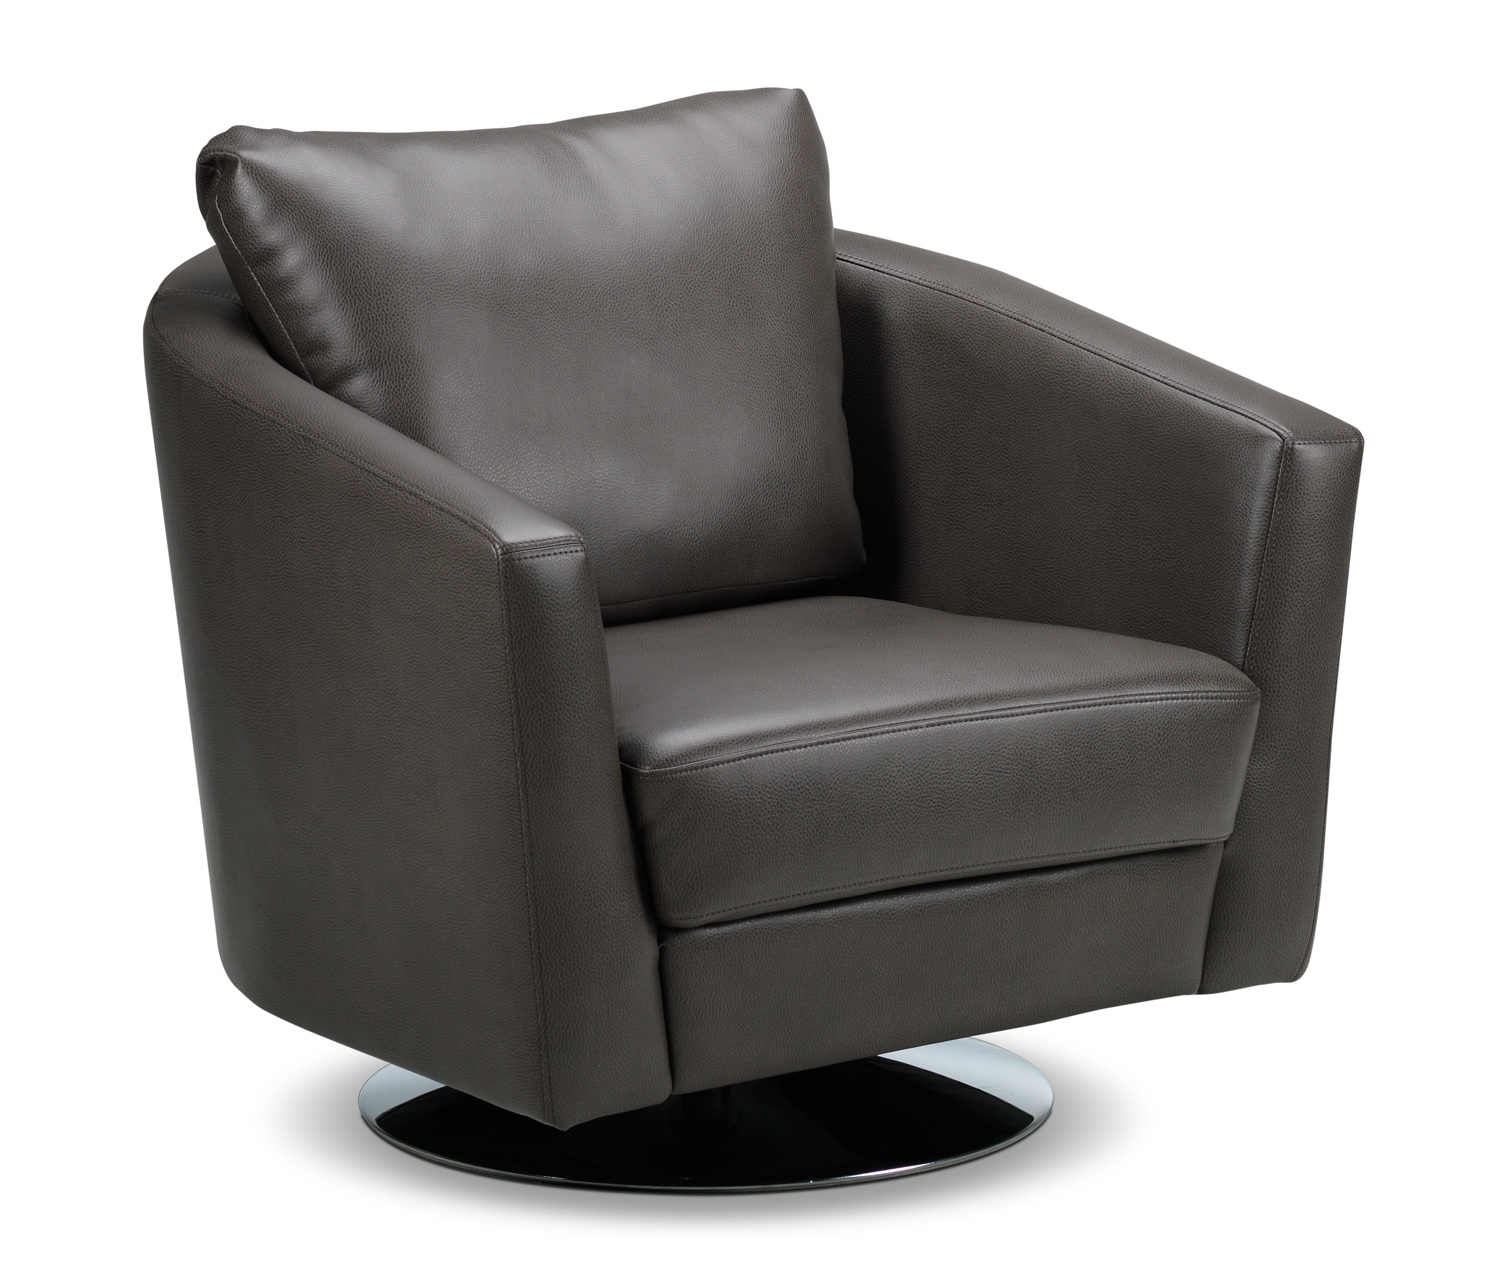 Bel-Air Swivel Chair - Elephant